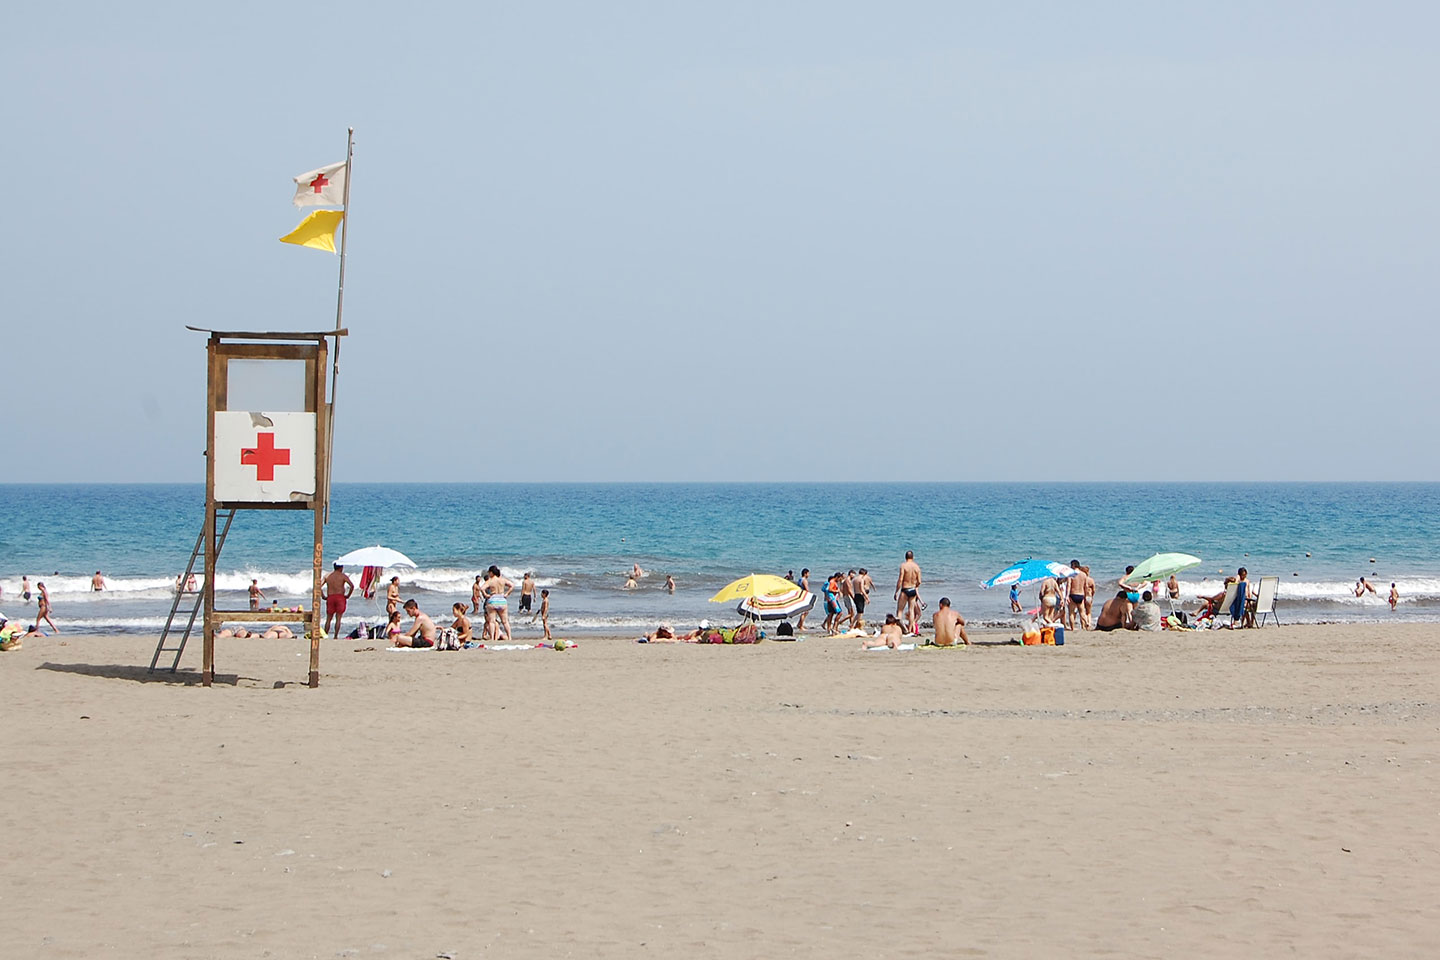 People at the beach near lifeguard tower